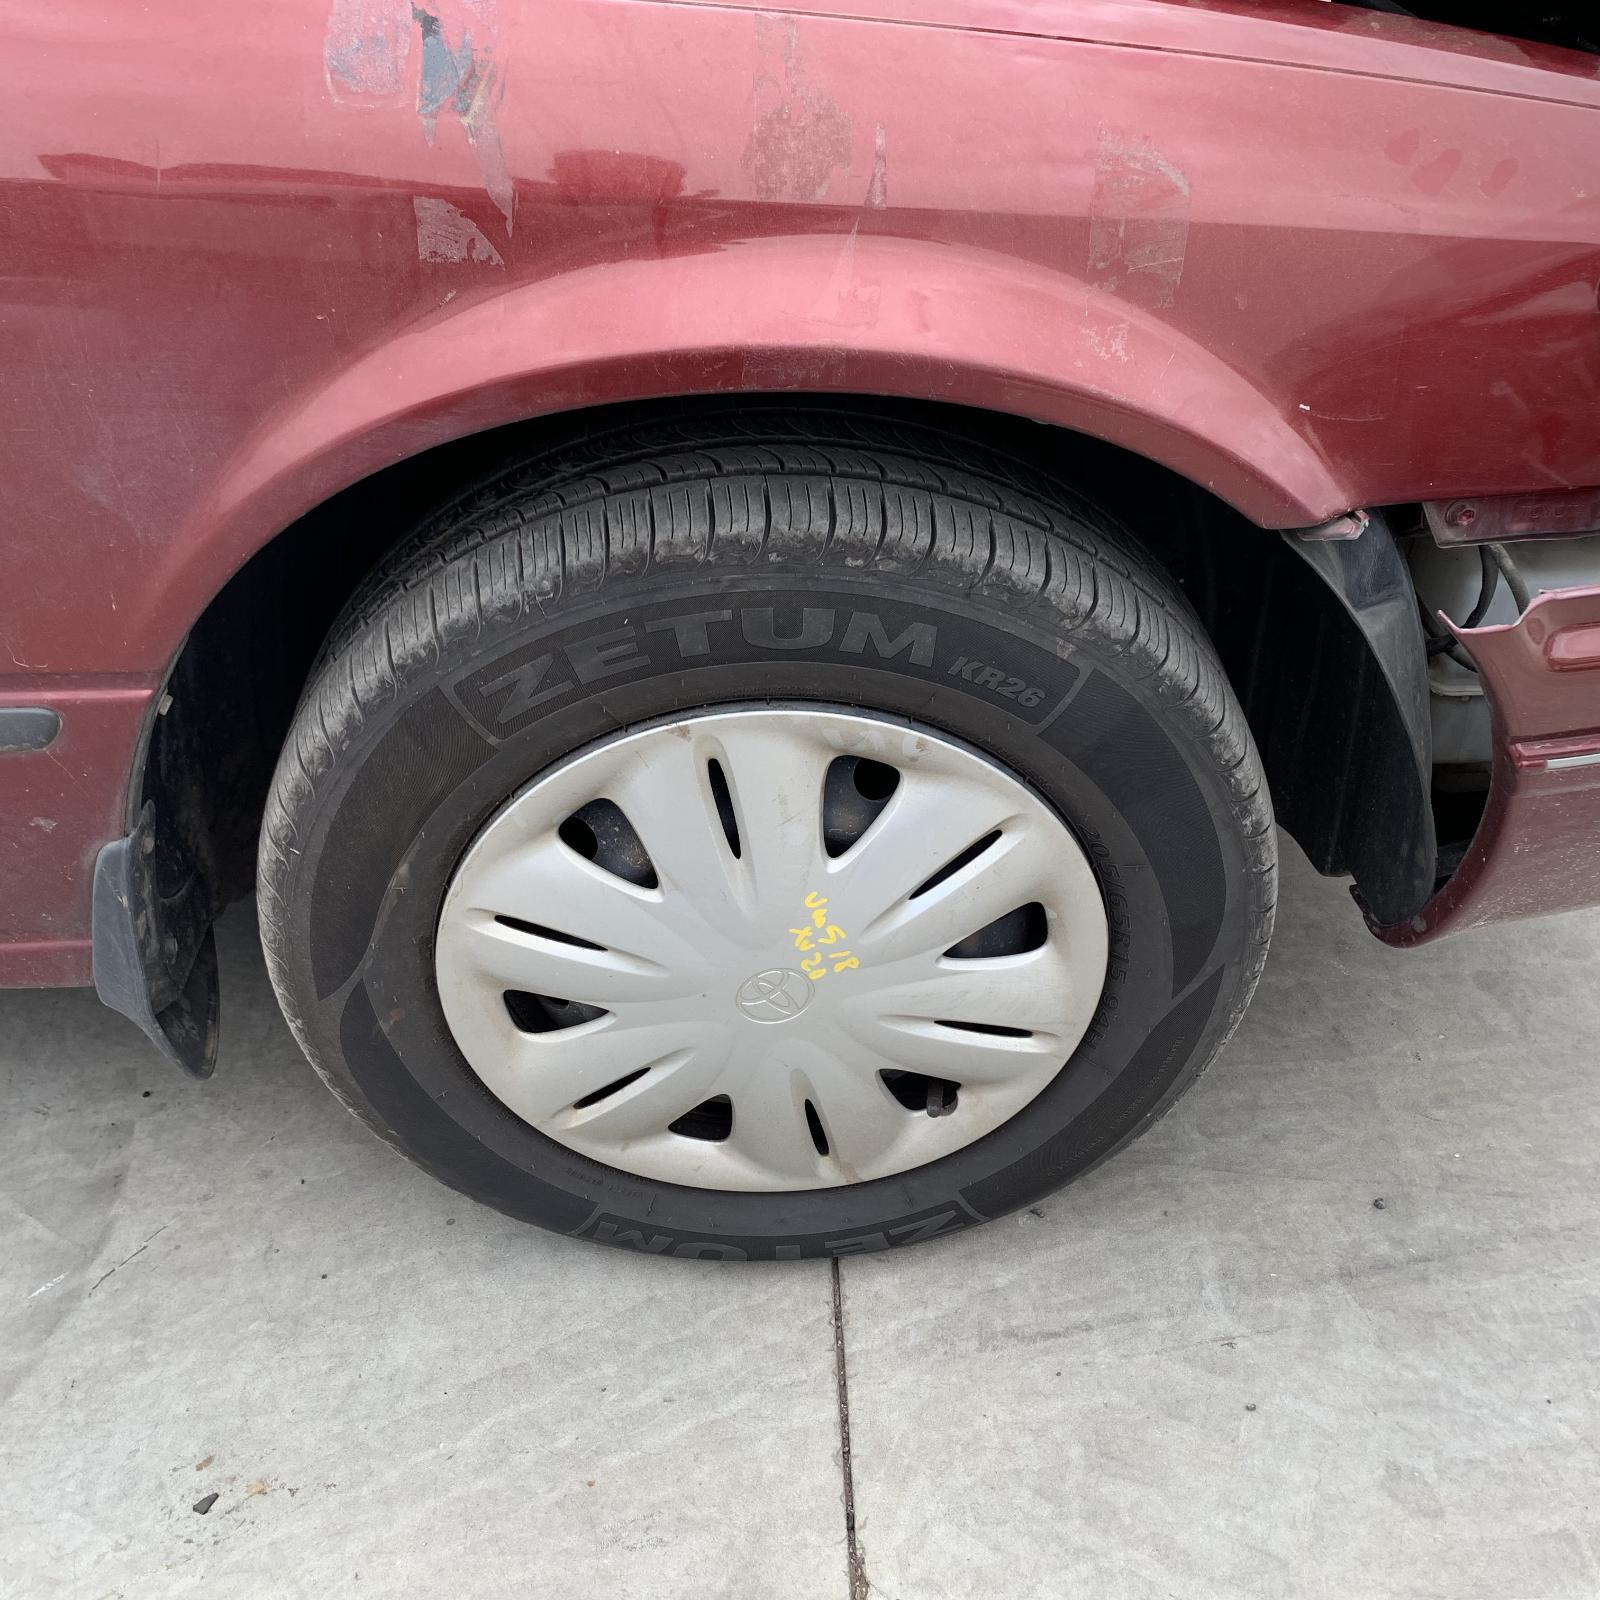 TOYOTA CAMRY, Wheel Cover/Hub Cap, SK20 08/97-08/02